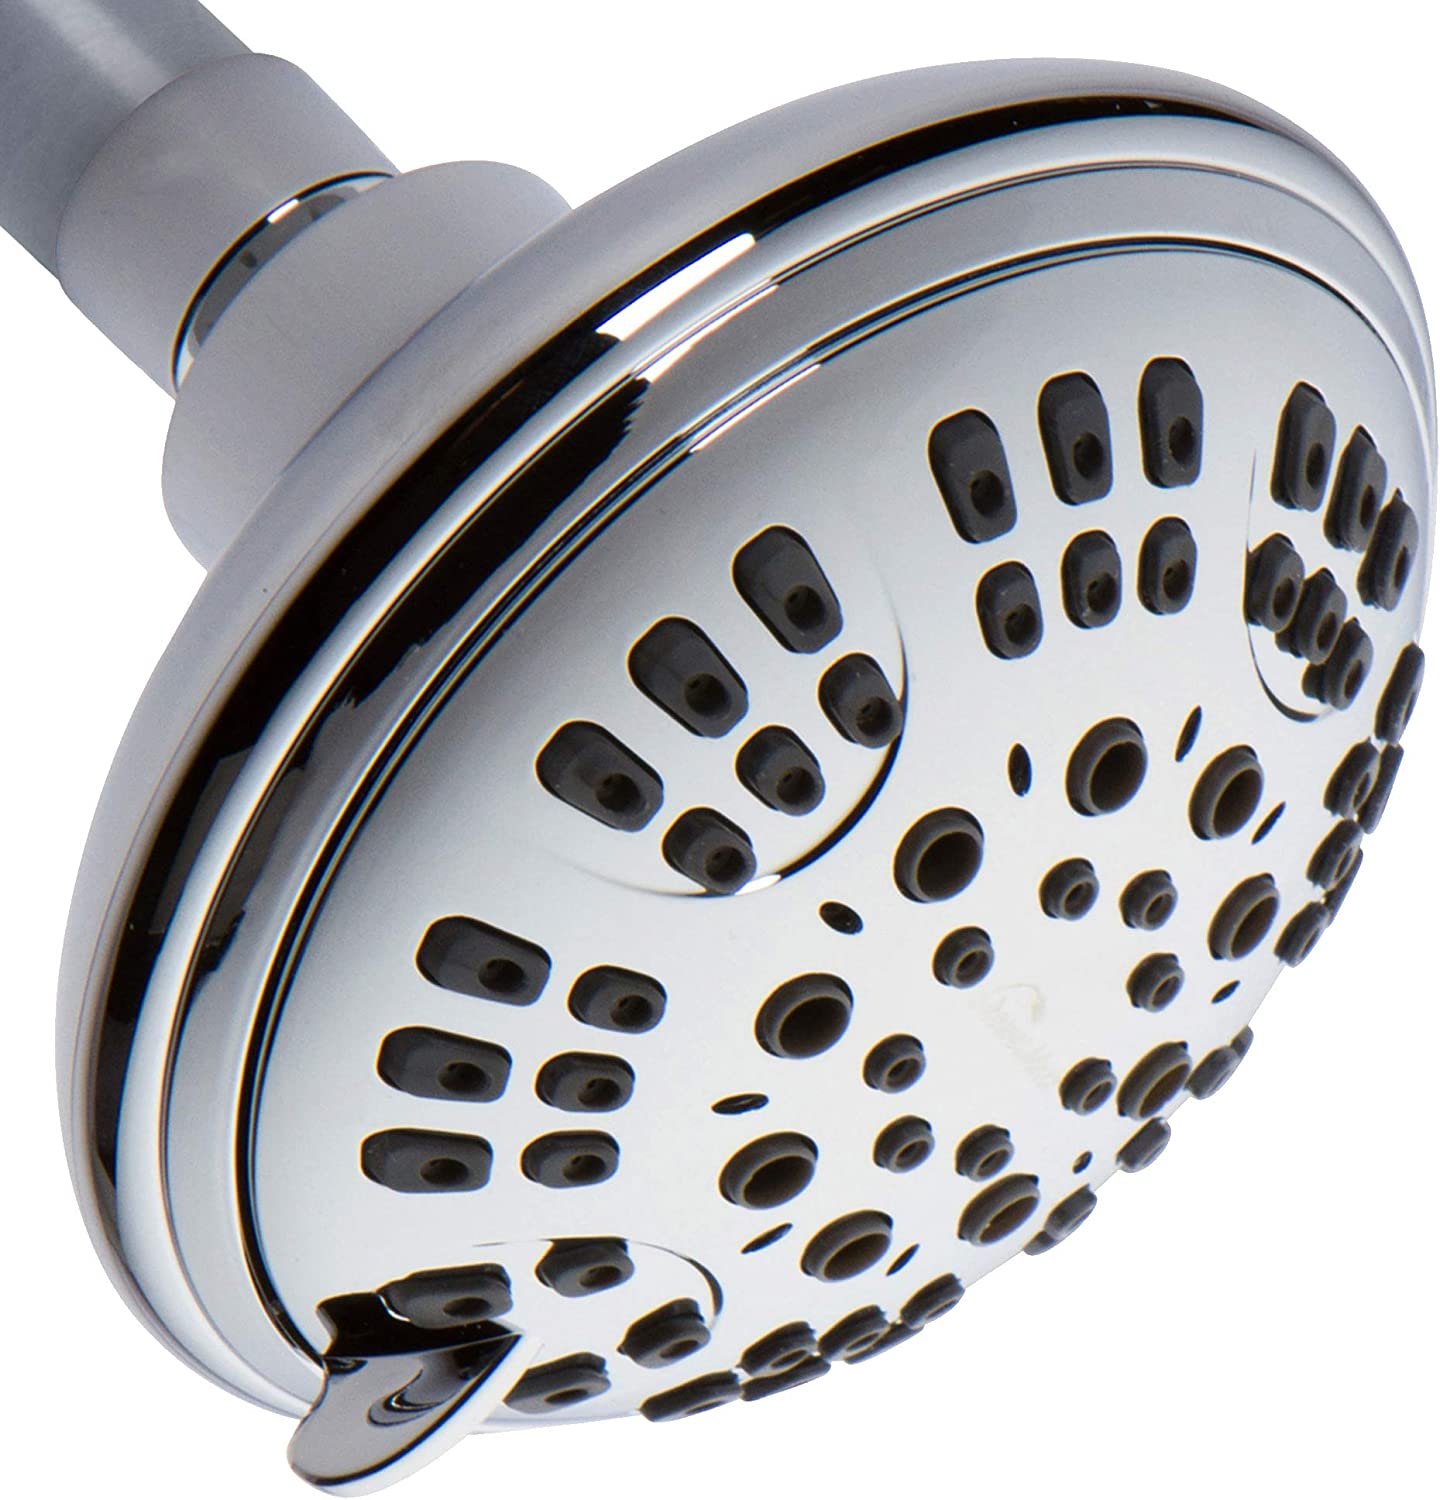 ShowerMaxx, Luxury Spa Series, 6 Spray Settings 4.5 inch Adjustable High Pressure Shower Head, MAXX-imize Your Shower with Easy-to-Remove Flow Restrictor Showerhead, Polished Chrome Finish